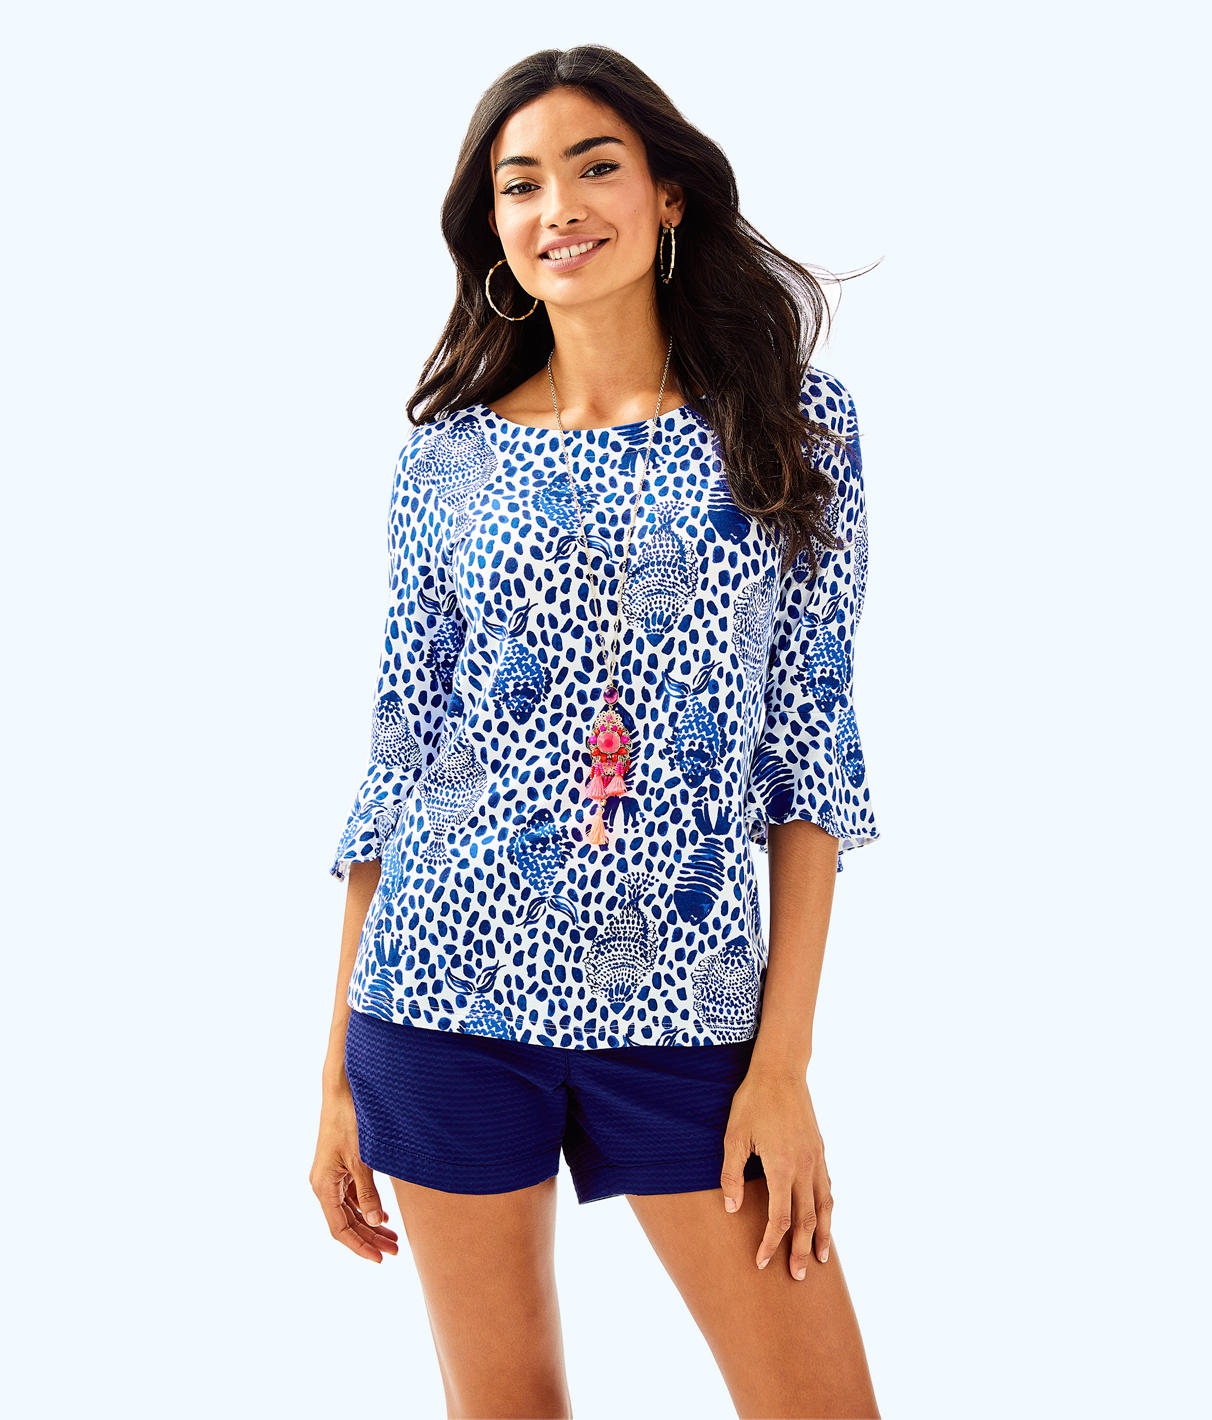 Lilly Pulitzer Lilly Pulitzer Womens Lilly Pulitzer Fontaine Top